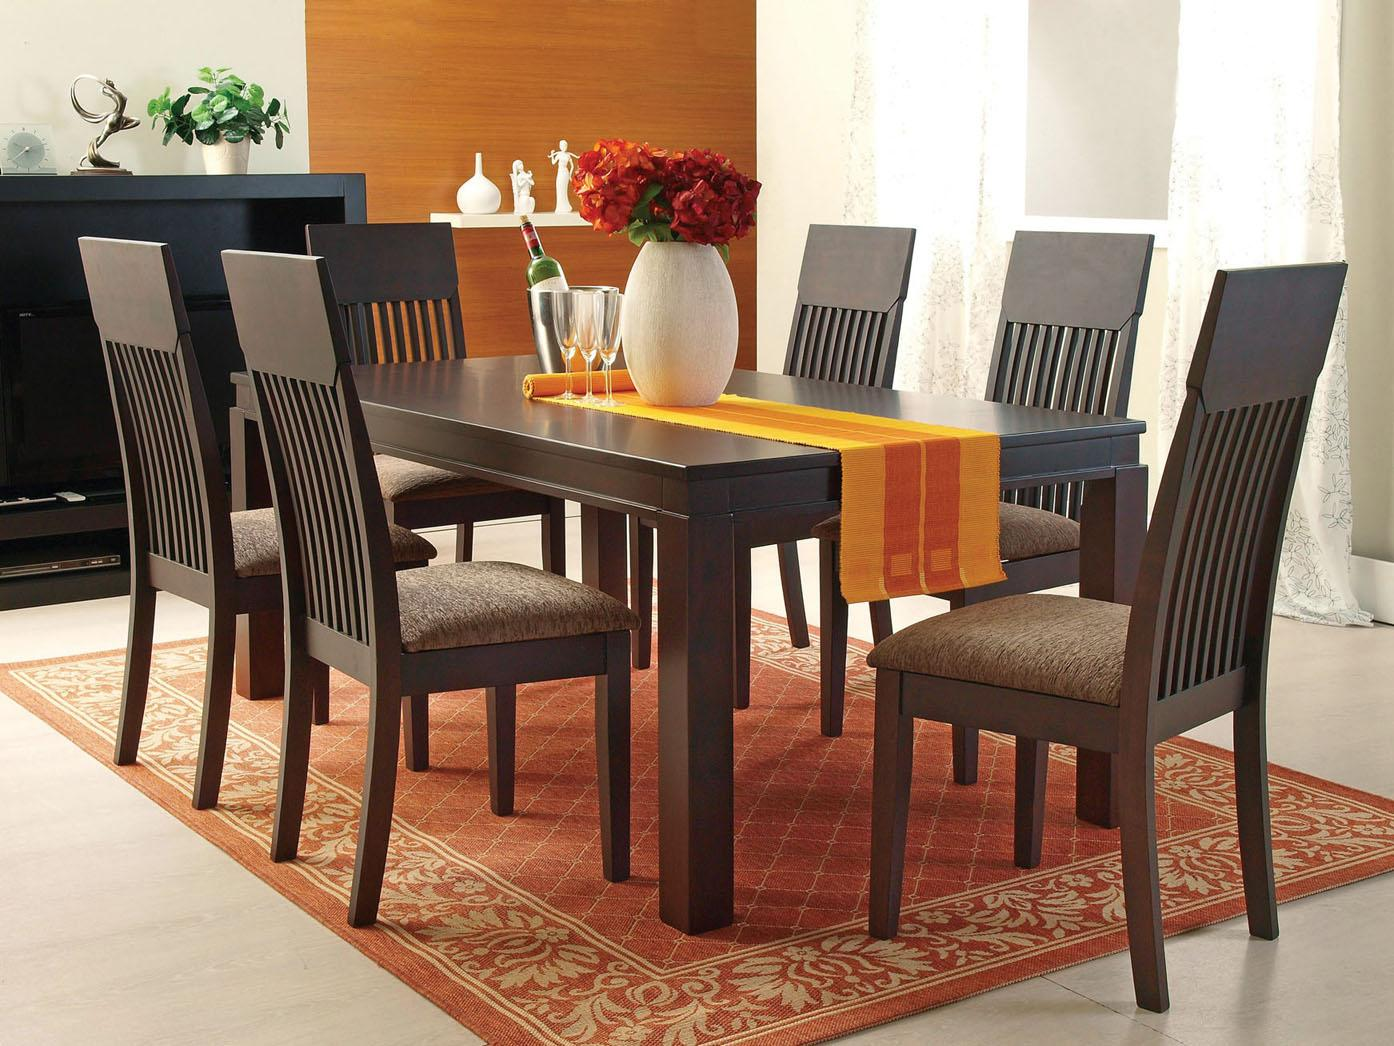 Casual 7-Piece Dining Table and Chair Set